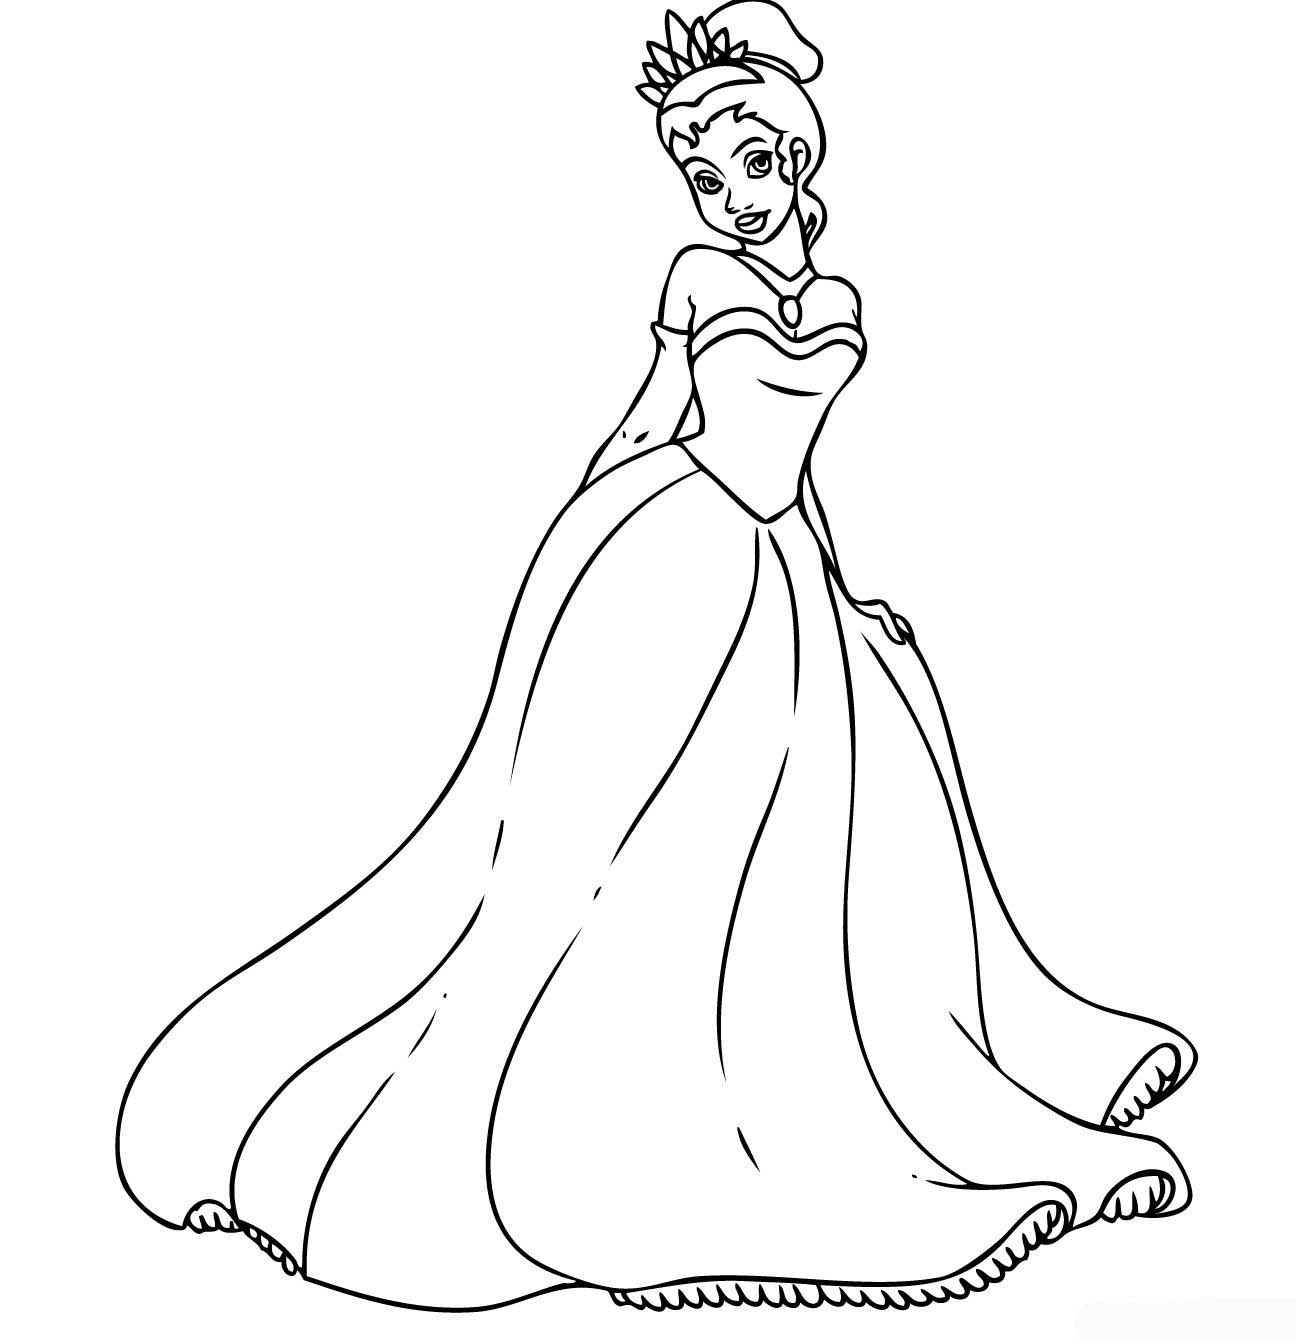 1296x1343 Princess Tiana Coloring Pages Of Disney Free For Kids Ribsvigyapan